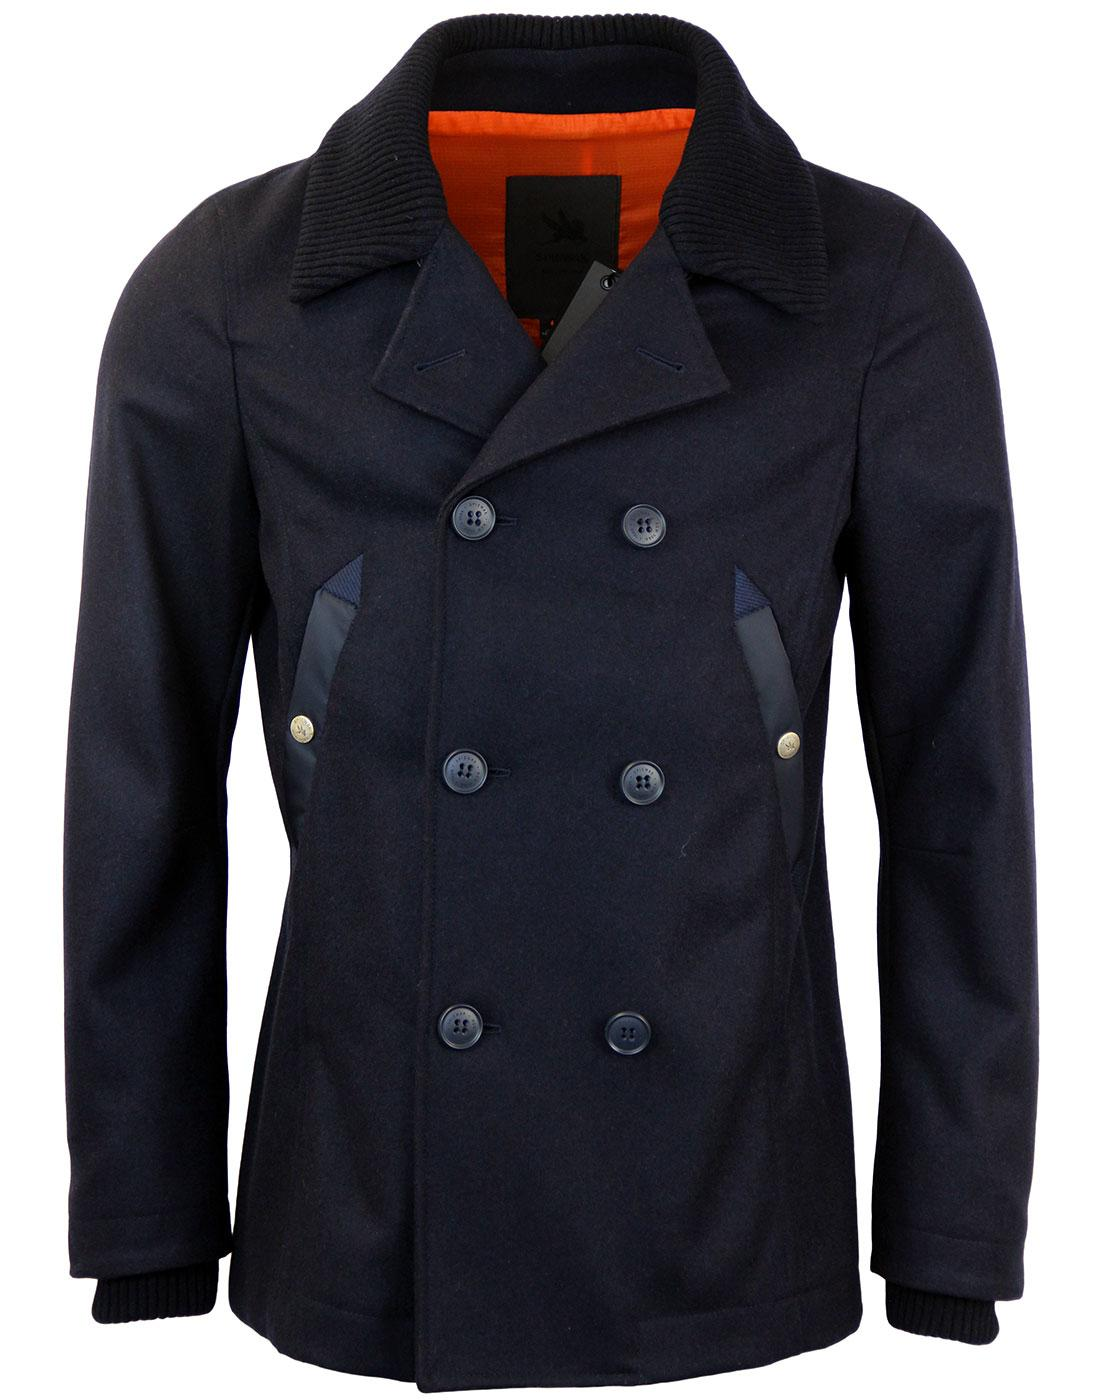 SPIEWAK Mod Wool Military Double Breasted Peacoat